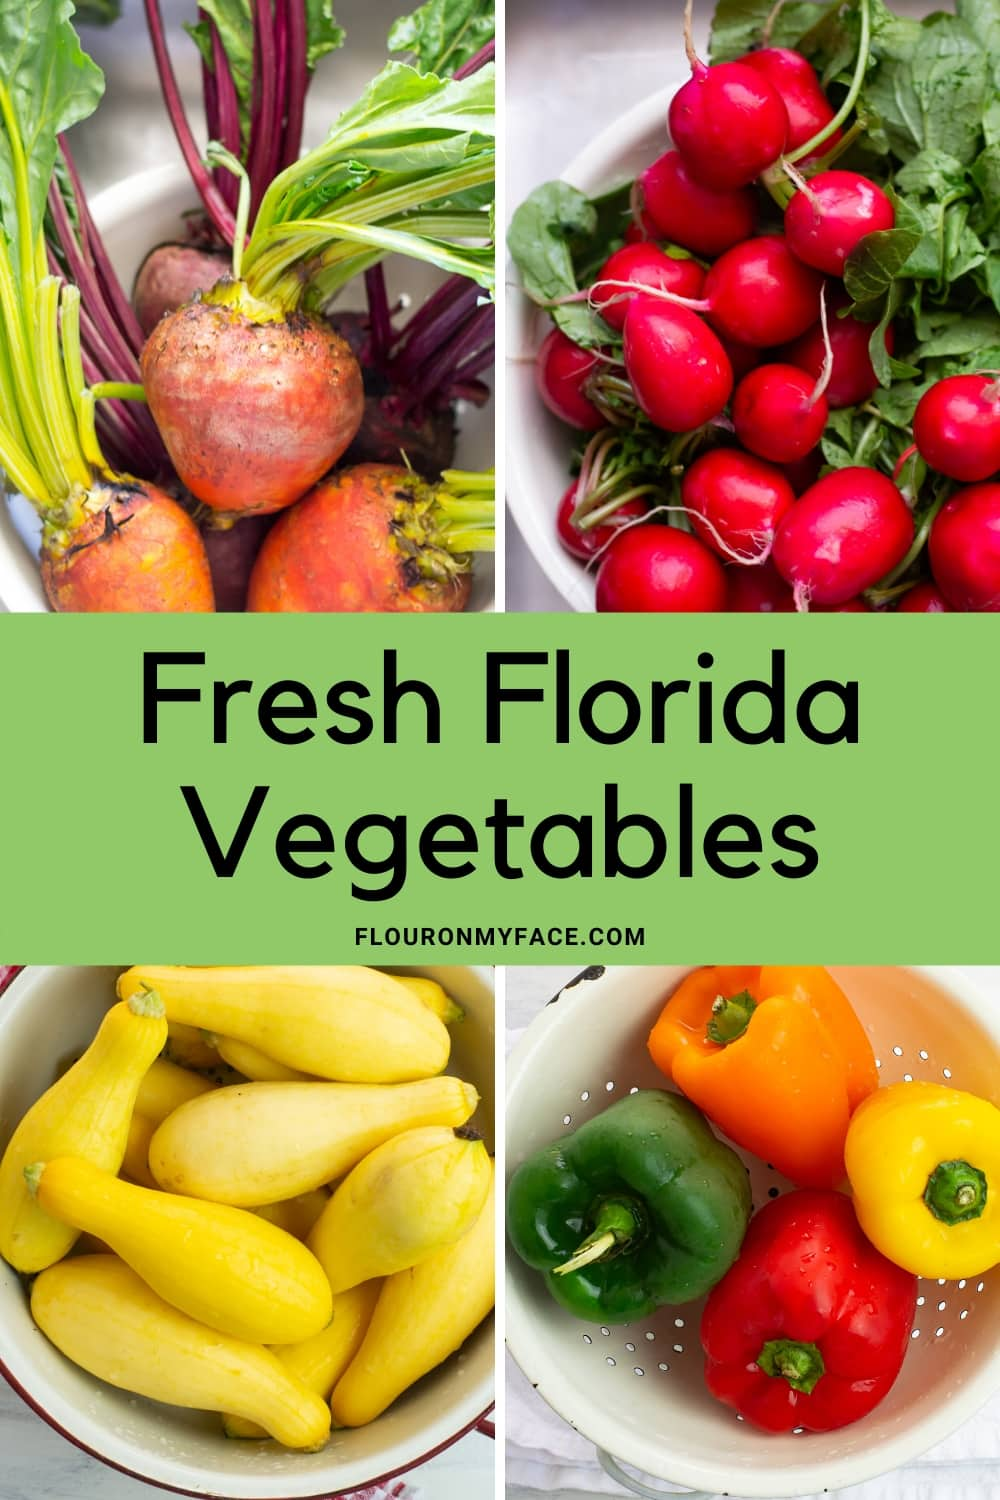 Collage Pictures of Fresh golden beets, radishes, yellow squash and sweet bell peppers all Florida Vegetables